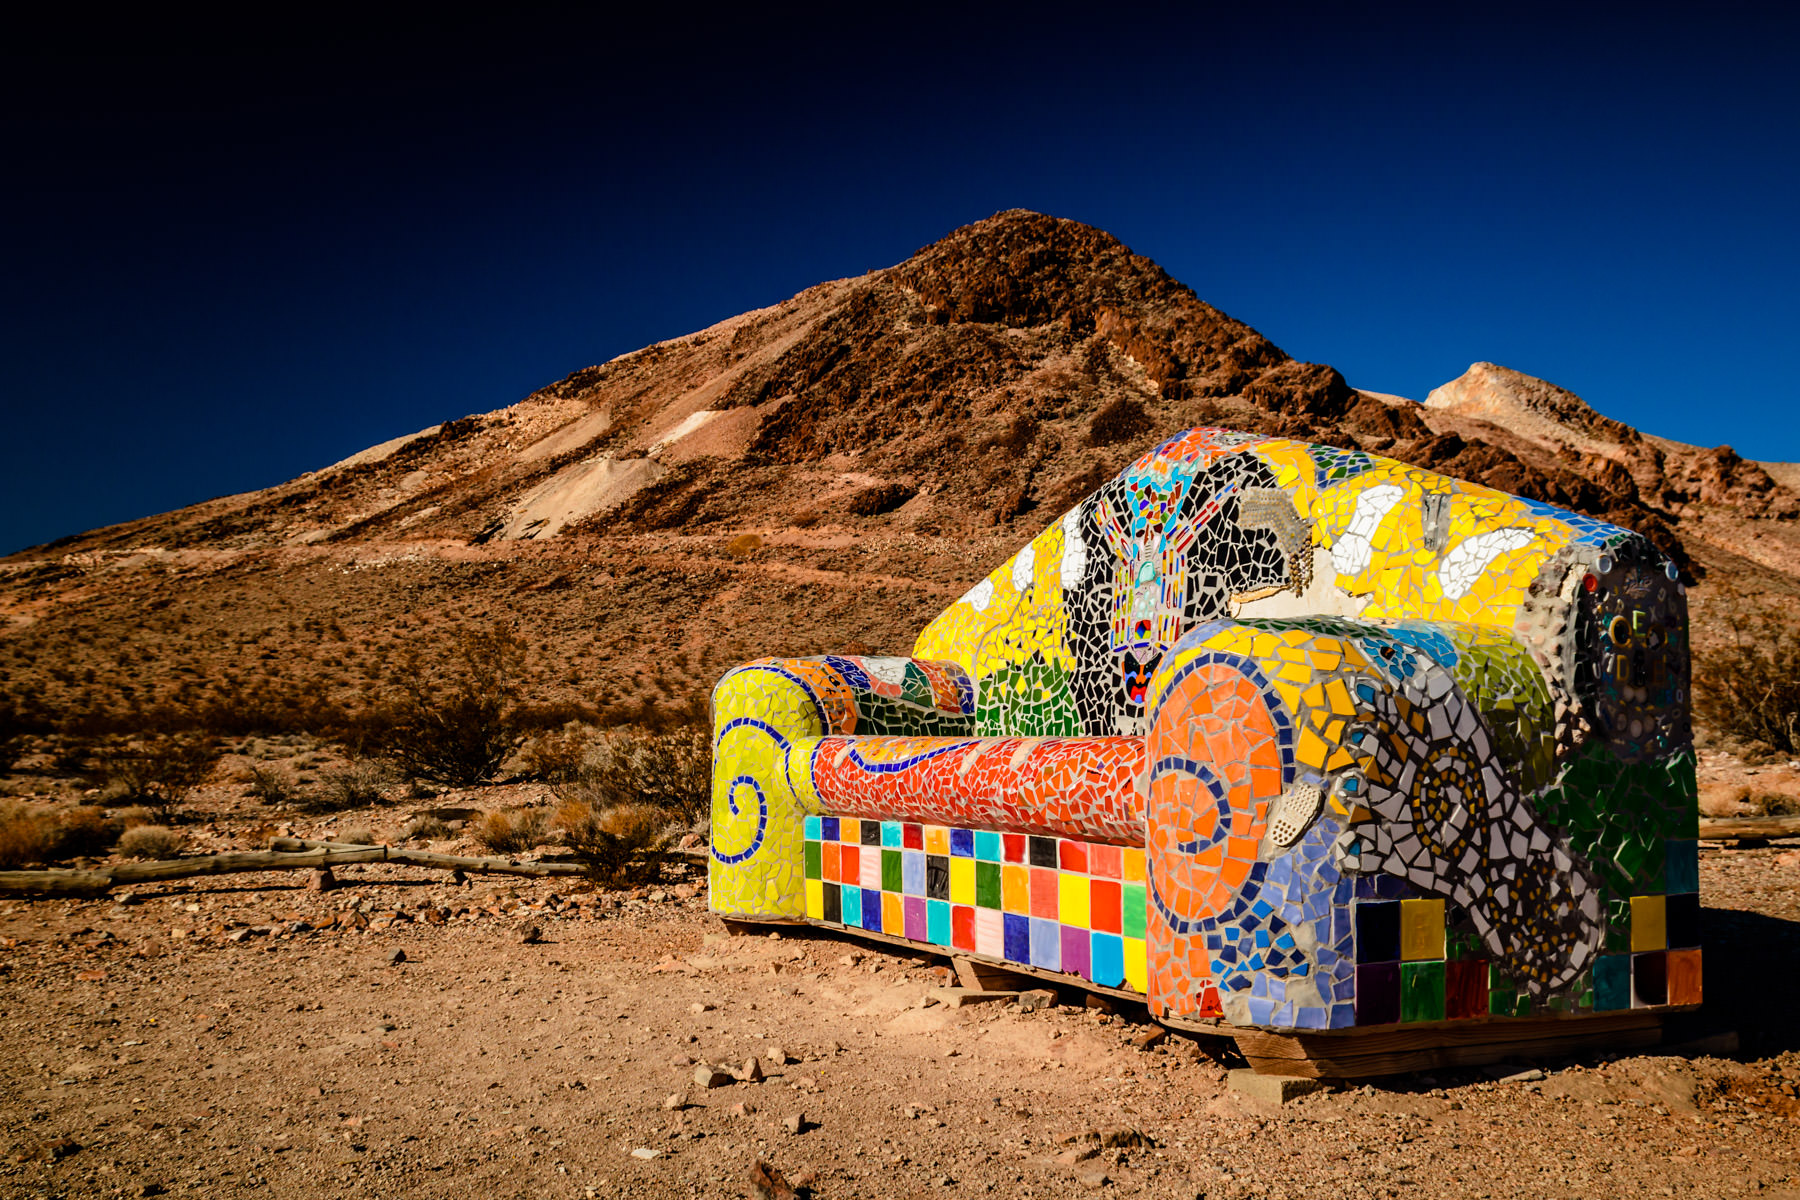 Sofie Steigmann's Sit Here! at the Goldwell Open Air Museum in the Nevada ghost town of Rhyolite.